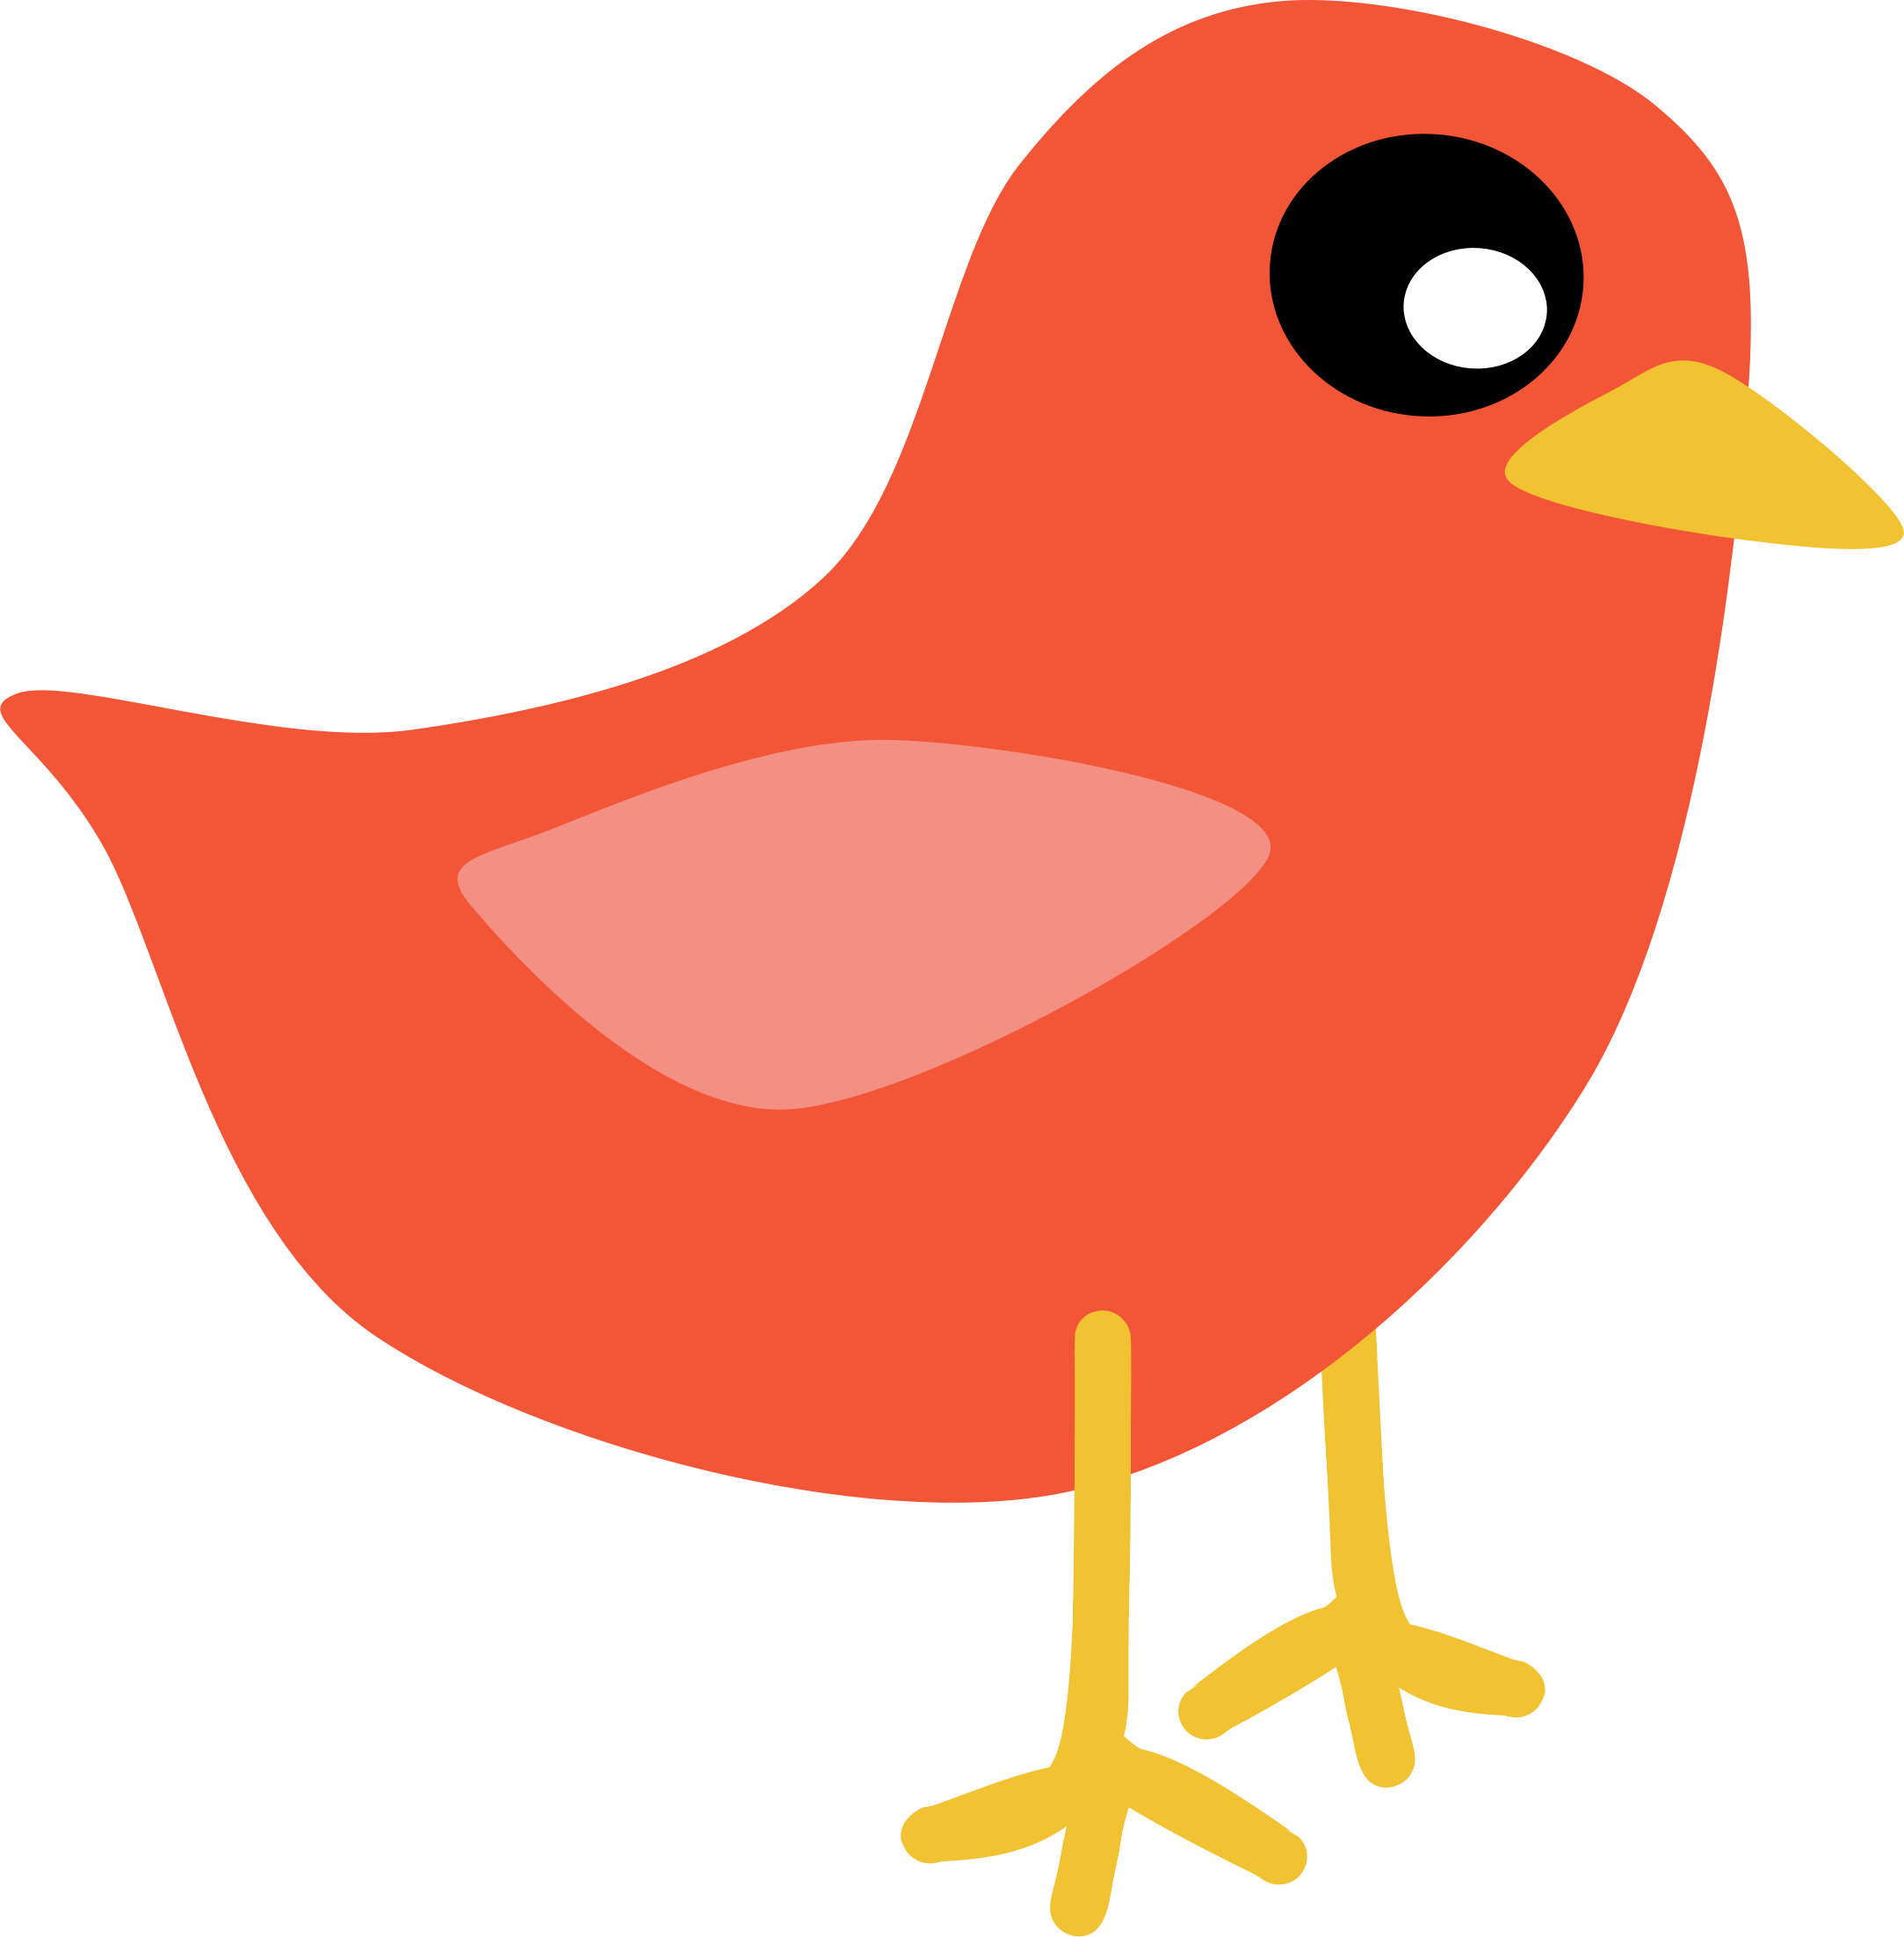 Red Bird By Scout-Red Bird By Scout-19